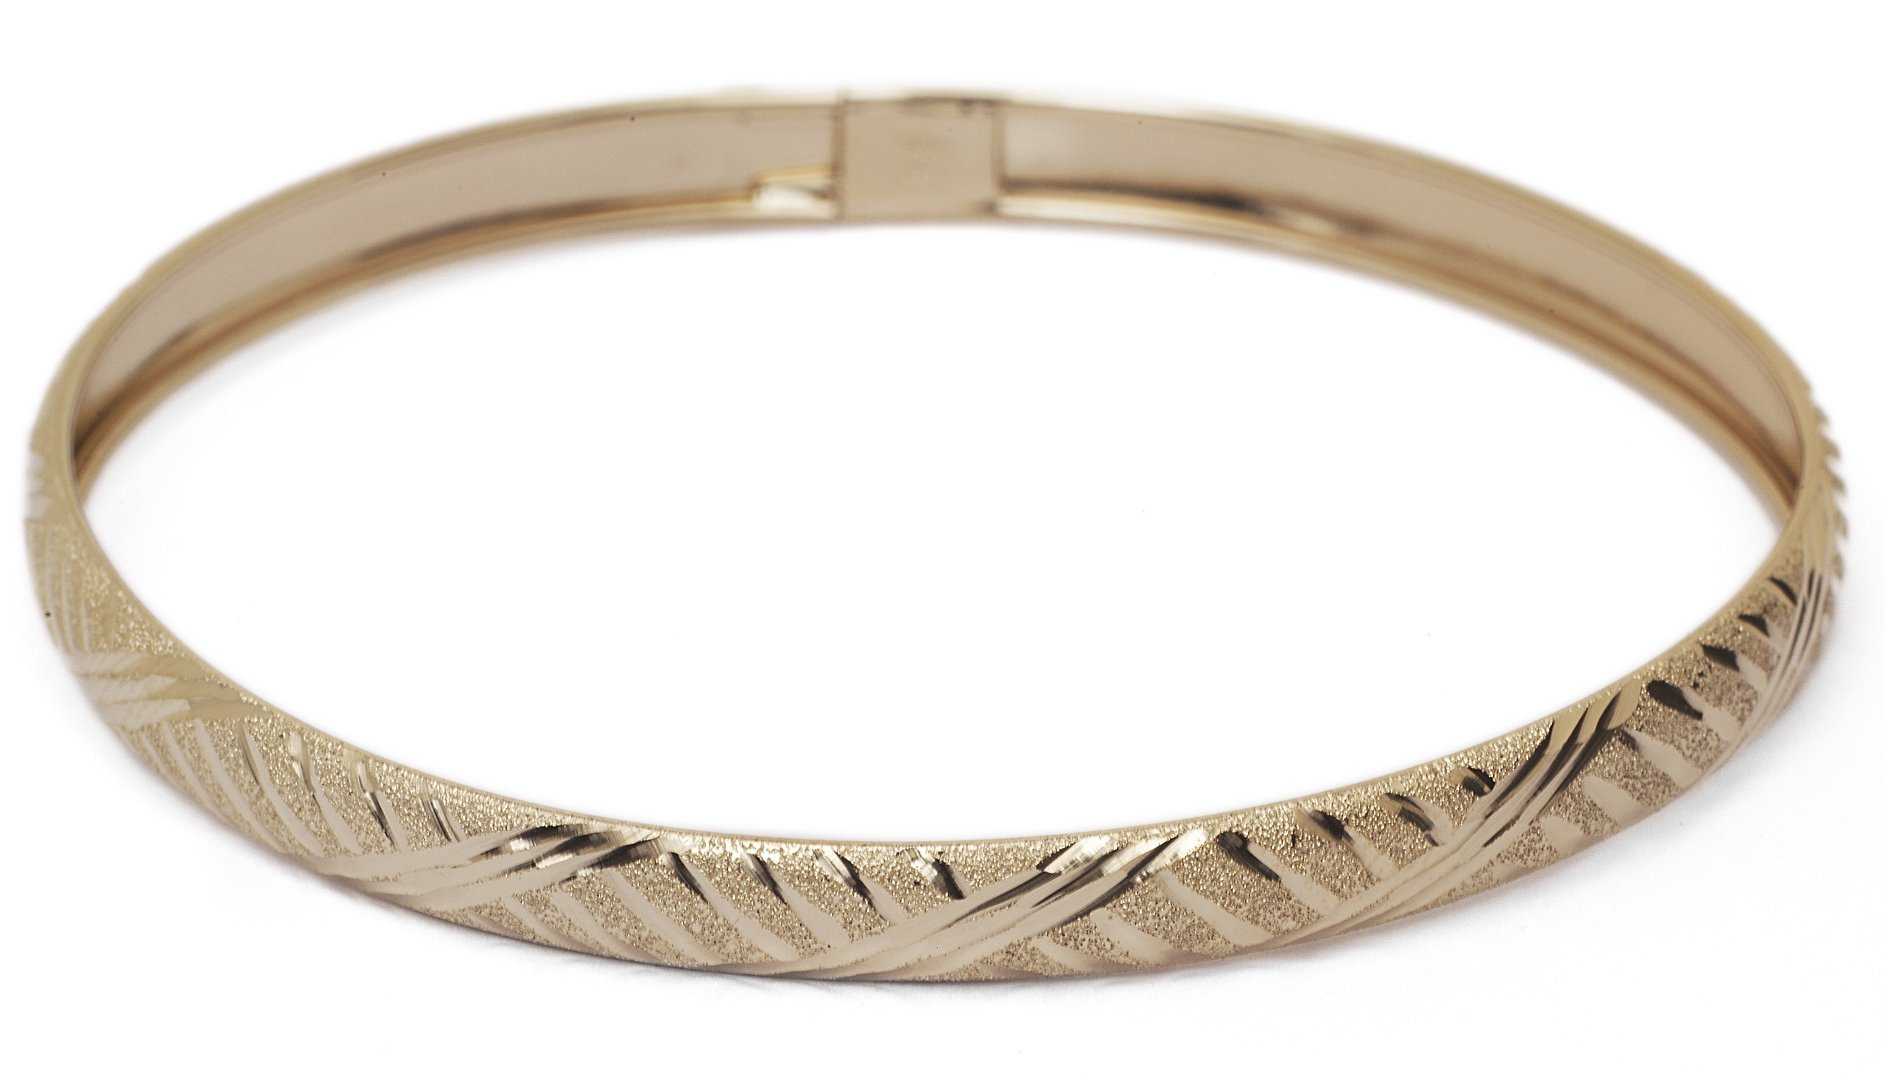 "7 Inch 10k Yellow Gold bangle bracelet Flexible Round with Diamond Cut Design (0.24"")"